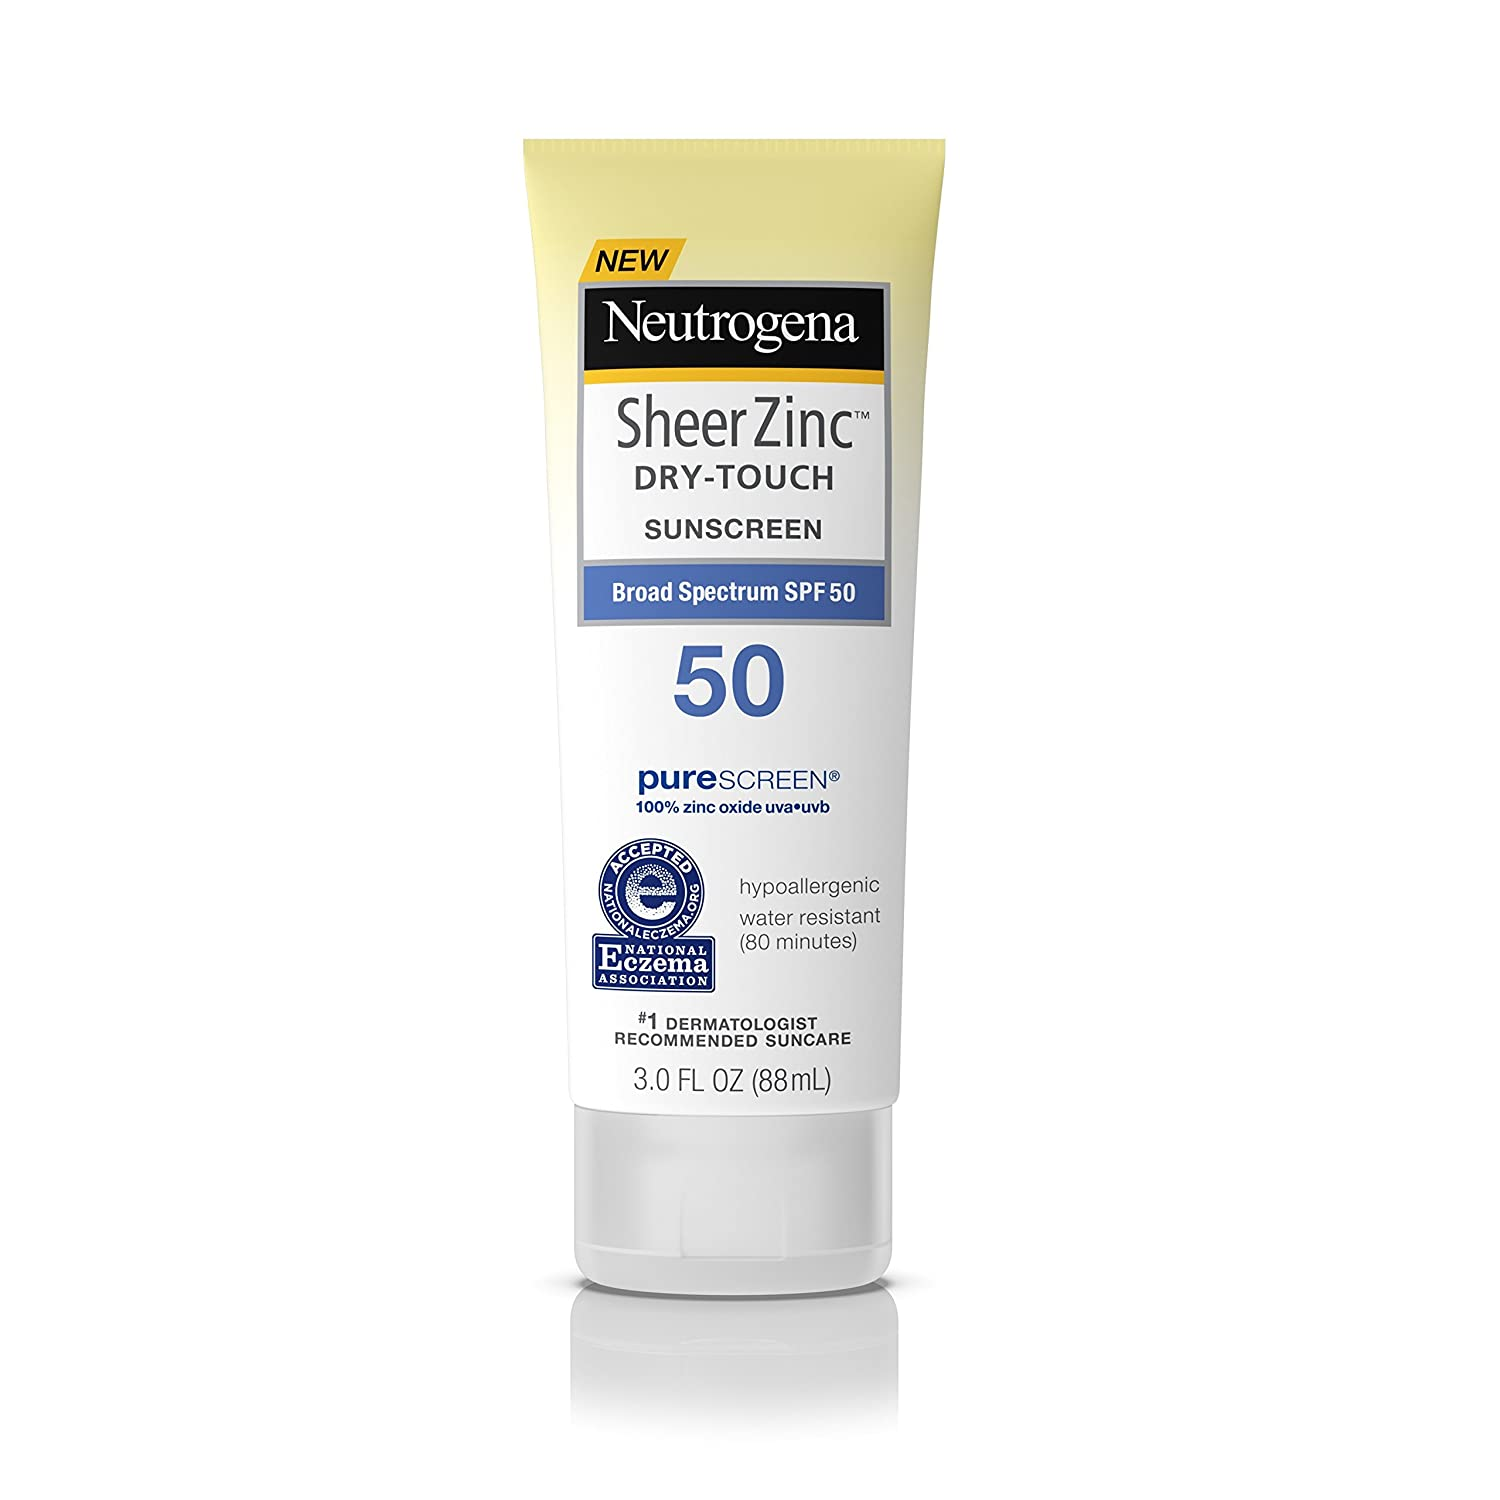 Neutrogena Sheer Zinc Oxide Dry-Touch Sunscreen Lotion with Broad Spectrum SPF 50, Water-Resistant, Hypoallergenic & Non-Greasy Mineral Sunscreen, 3 fl.Oz (Pack of 3) 086800110804